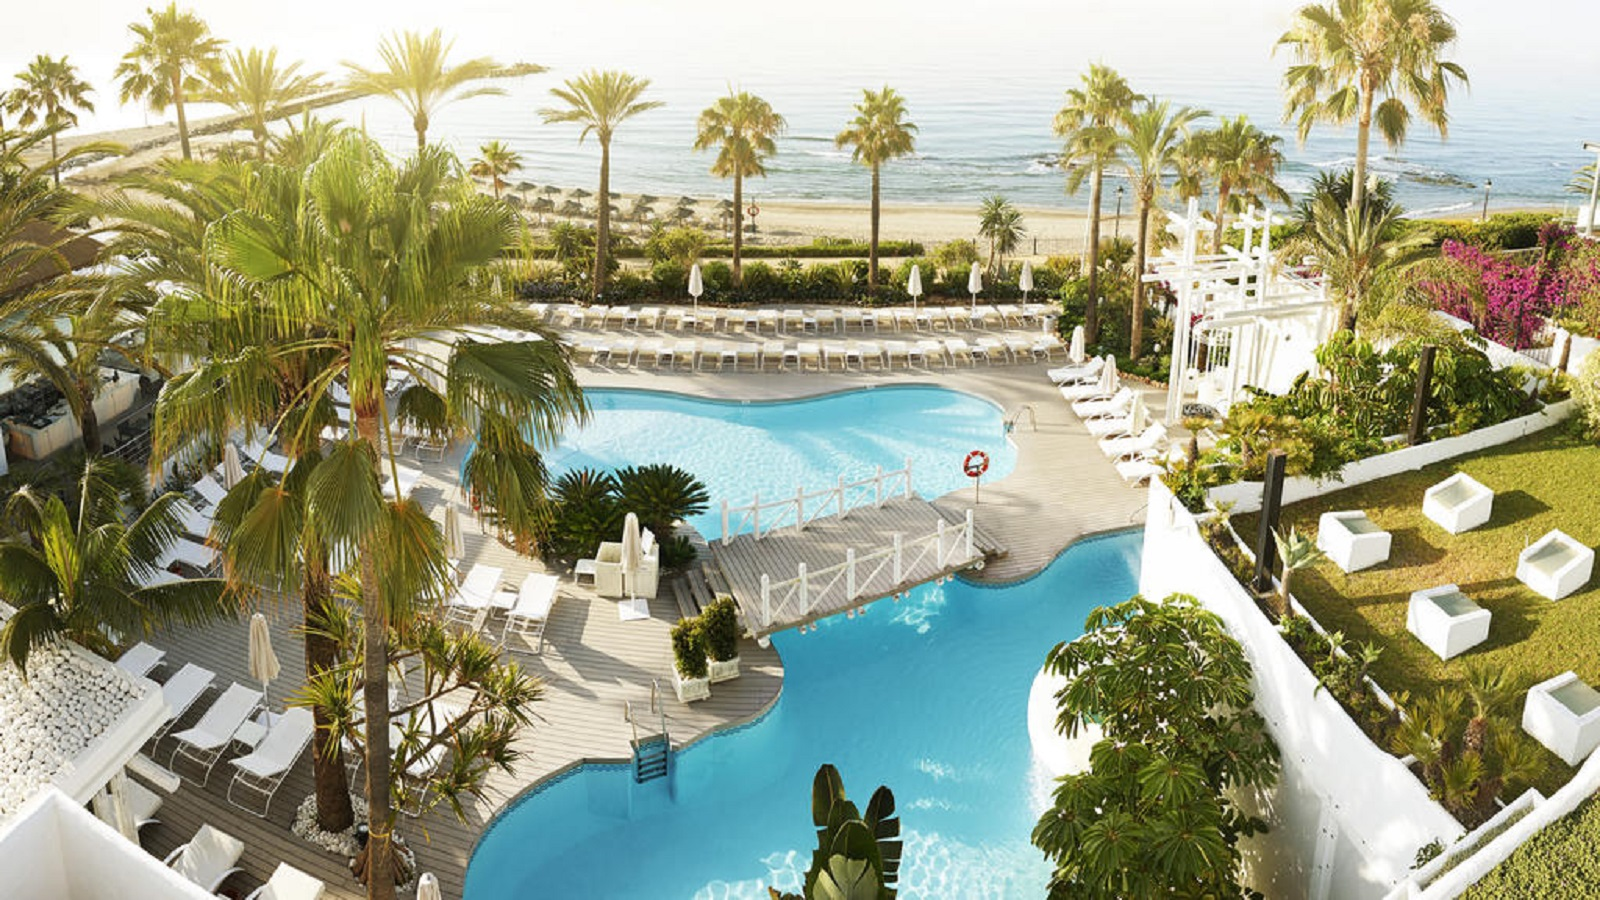 Luxury hotels worth a stay on the Costa Del Sol